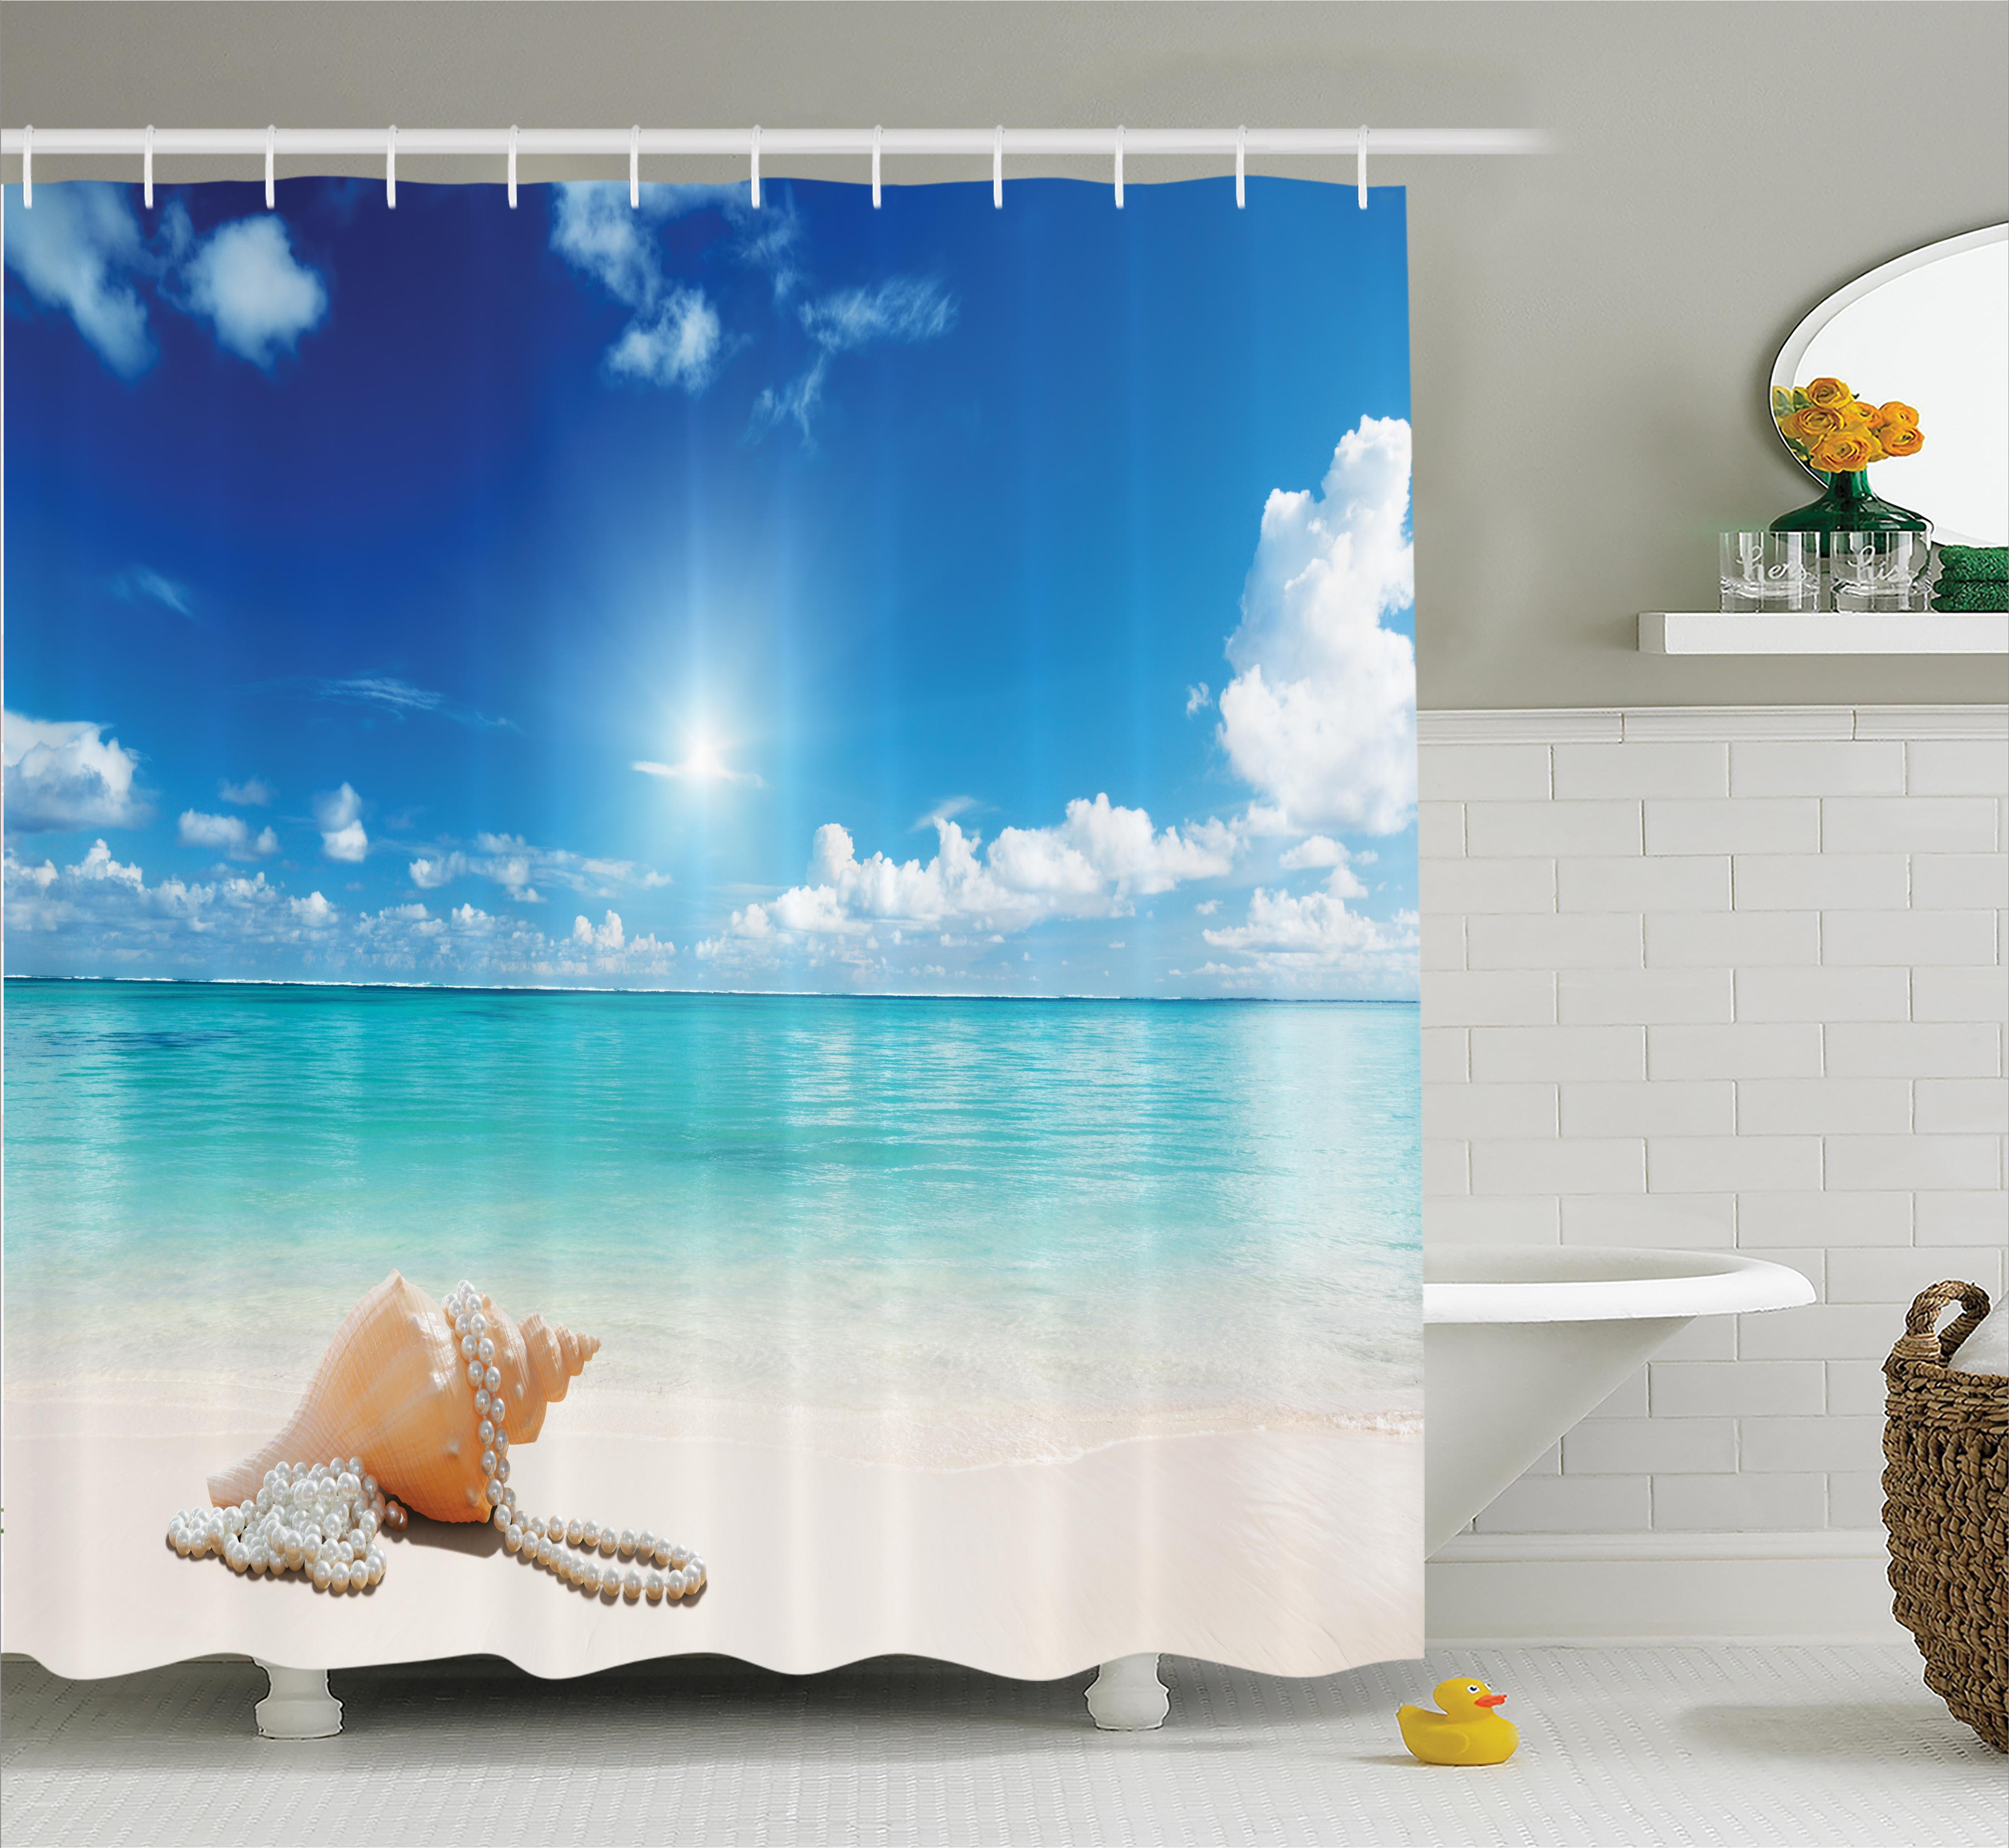 Shower Curtain Set, Seashells and Pearls on Sandy Beach Tropical Ocean Dreamiest Coastal Charm Image, Bathroom Decor,  Turquoise Cream, by Ambesonne